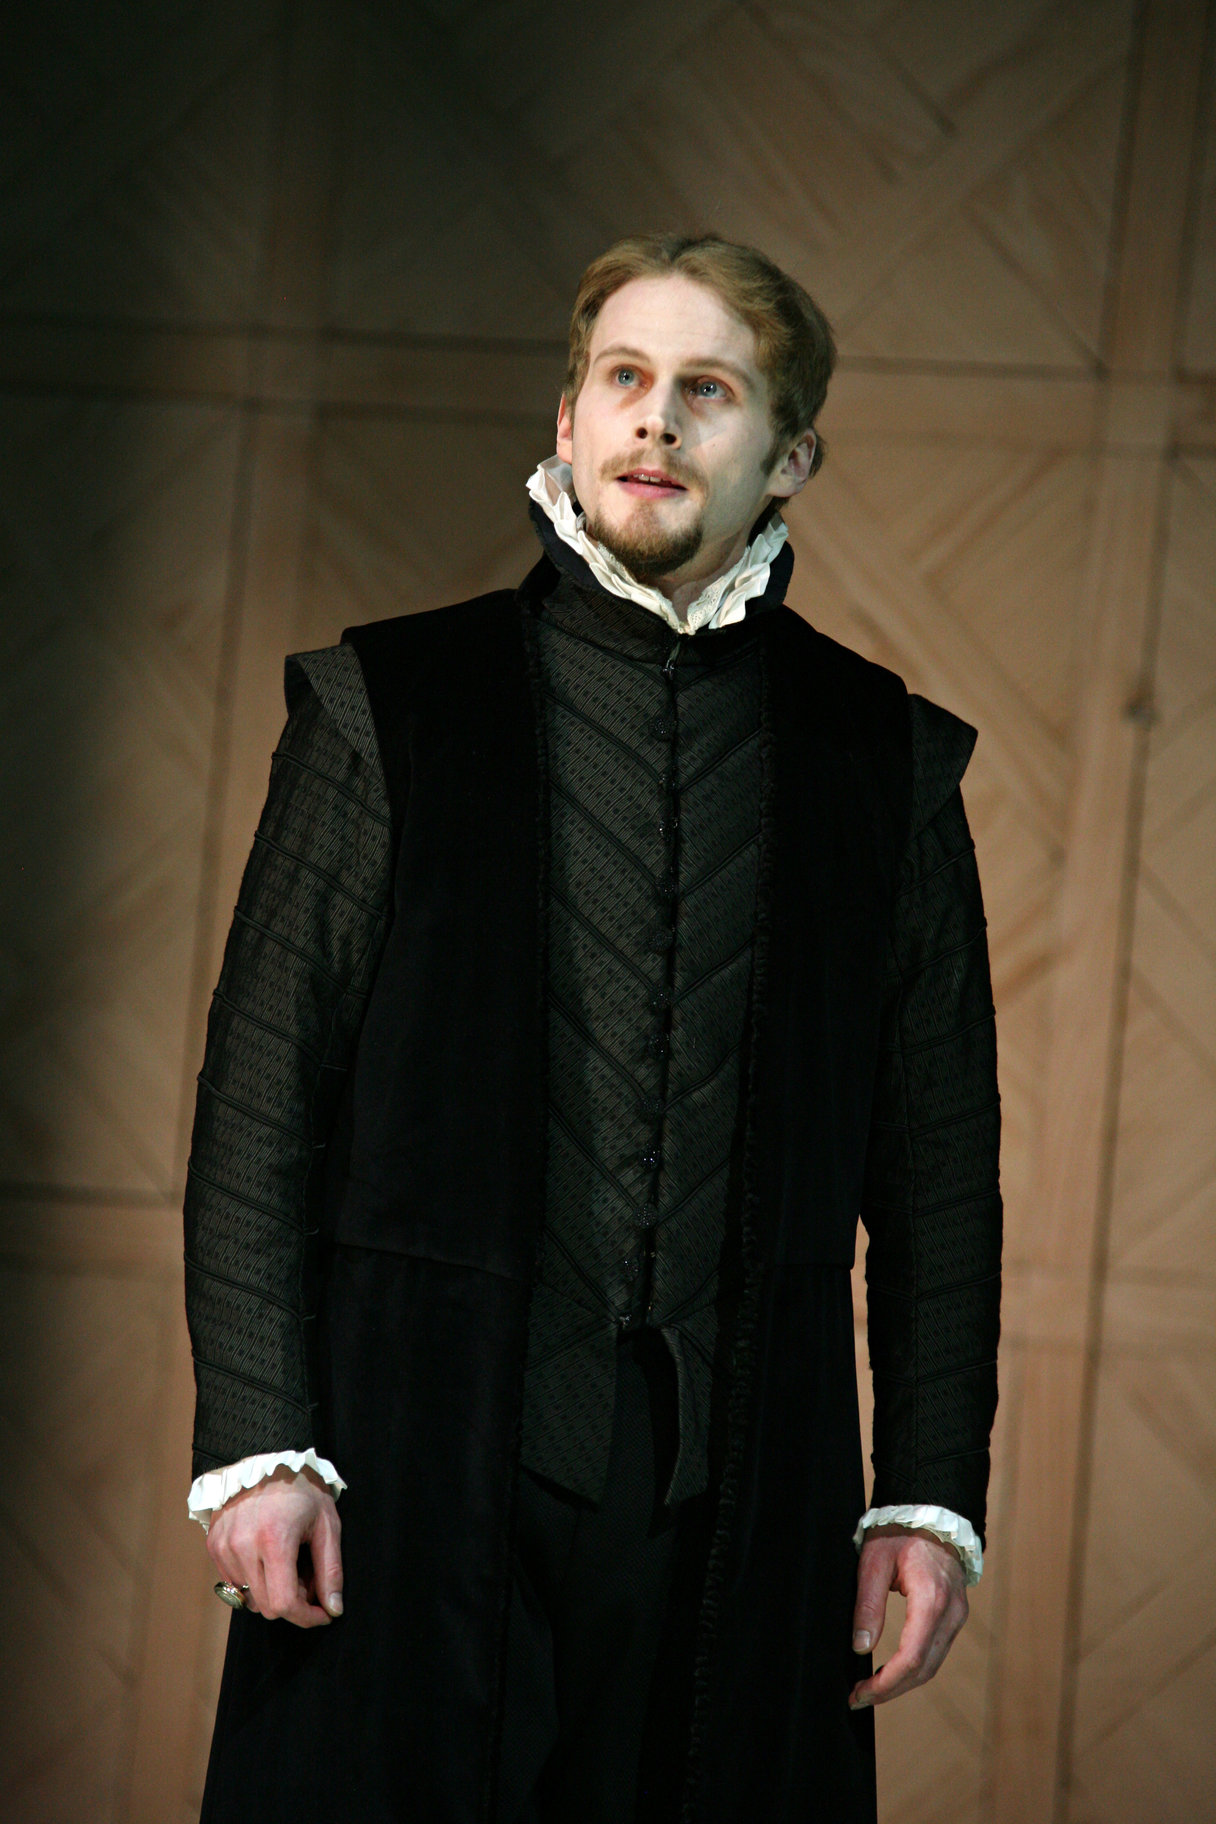 A pale man in a black suit with a small white ruff.